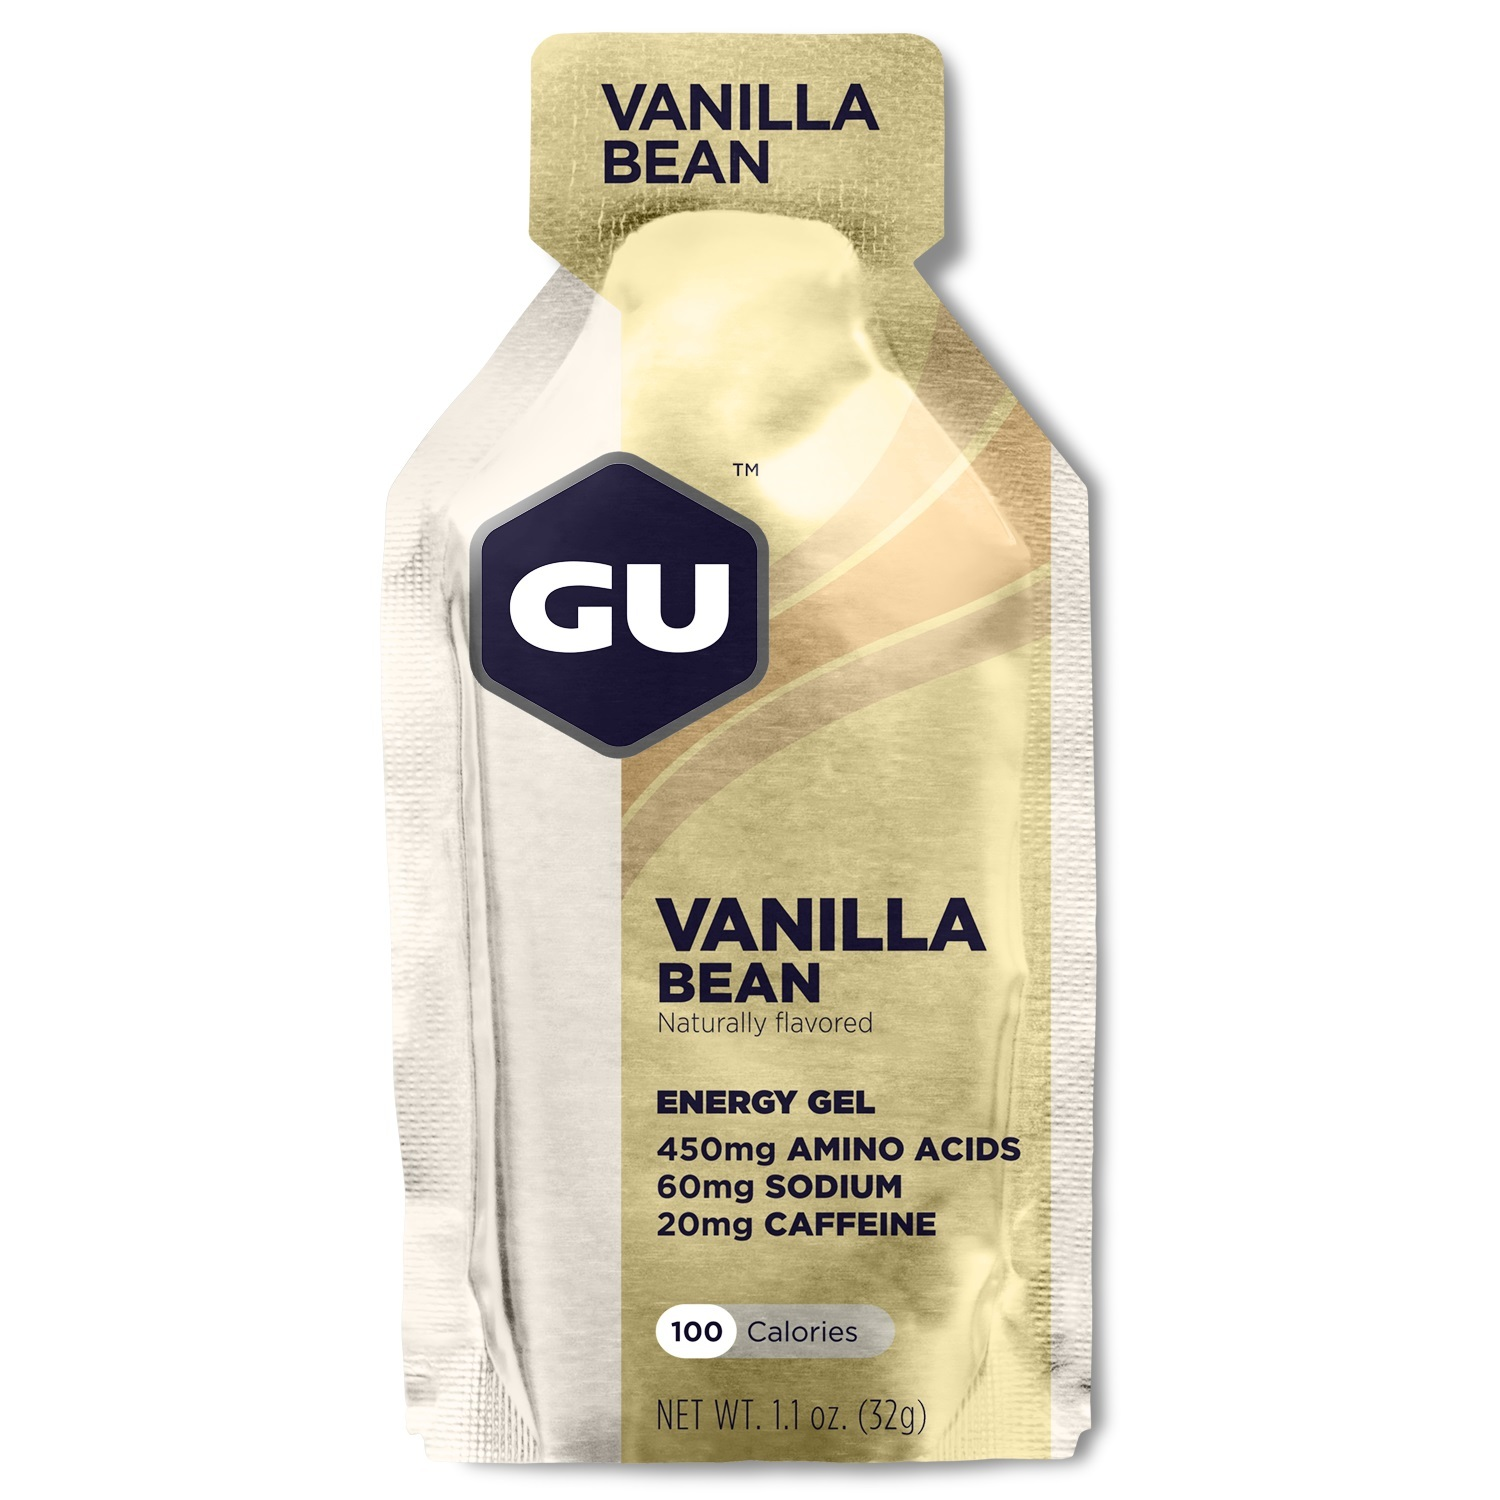 GU Energy Gel - Vanilla Bean (32g) Single Serve image